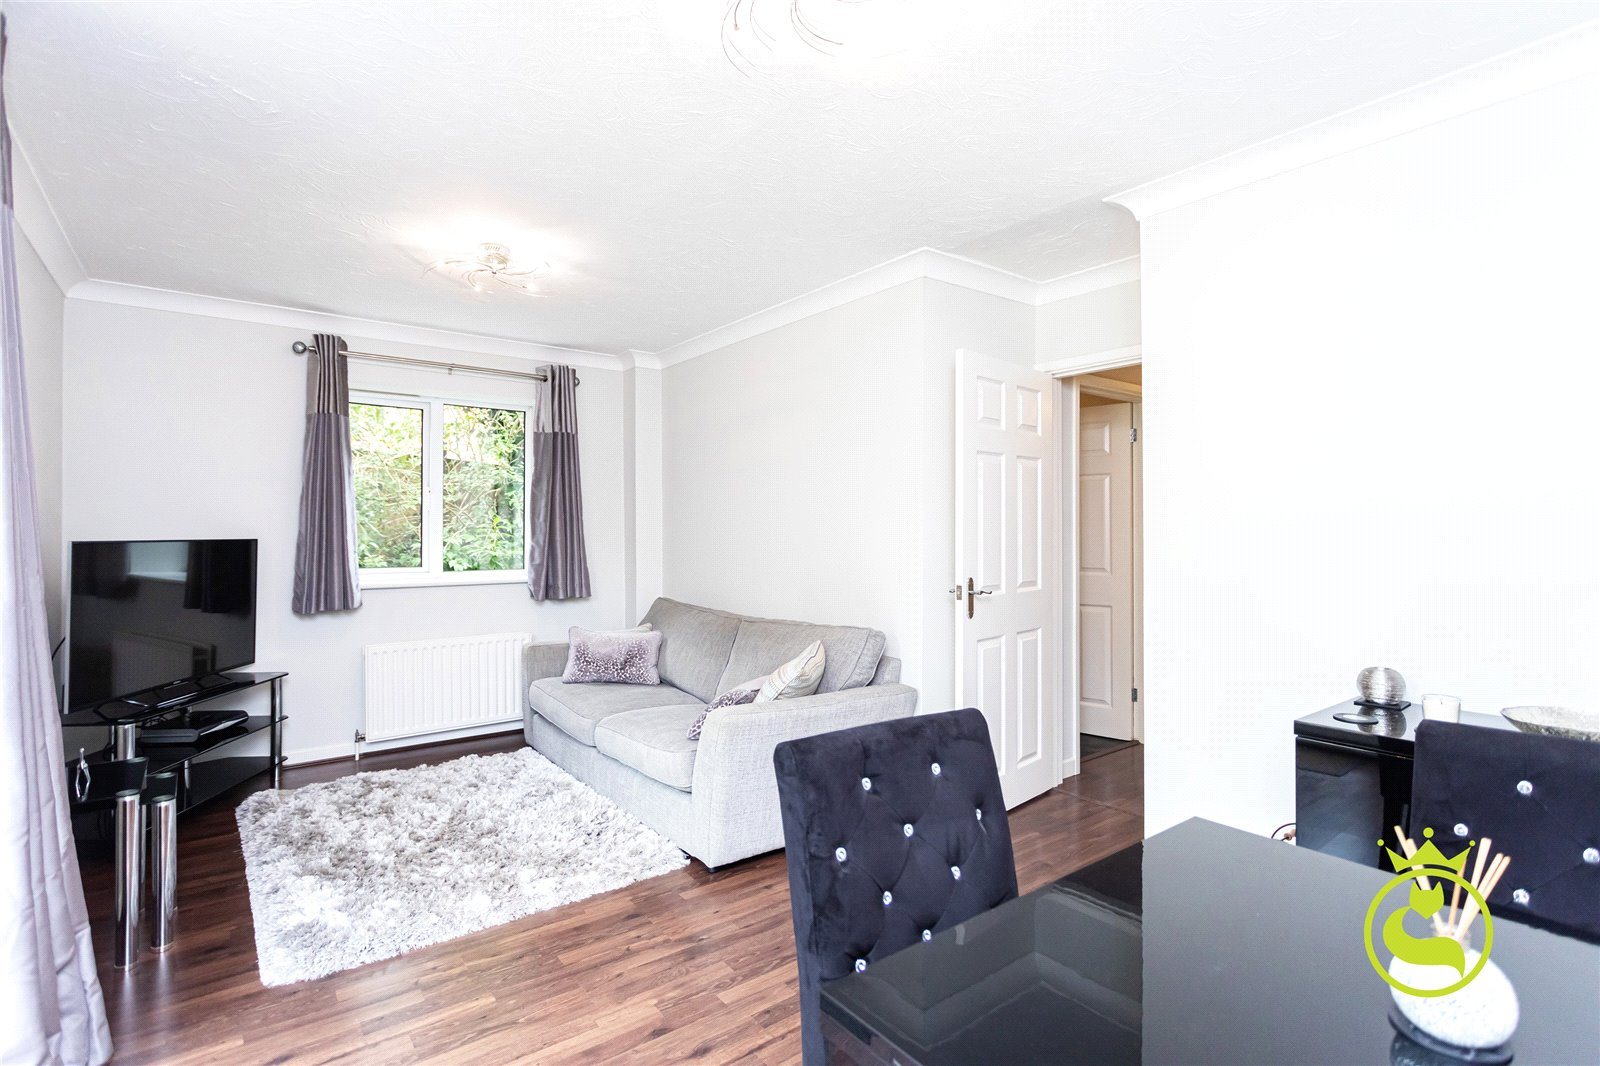 2 bed apartment to rent in Danecourt Road, Poole - Property Image 1